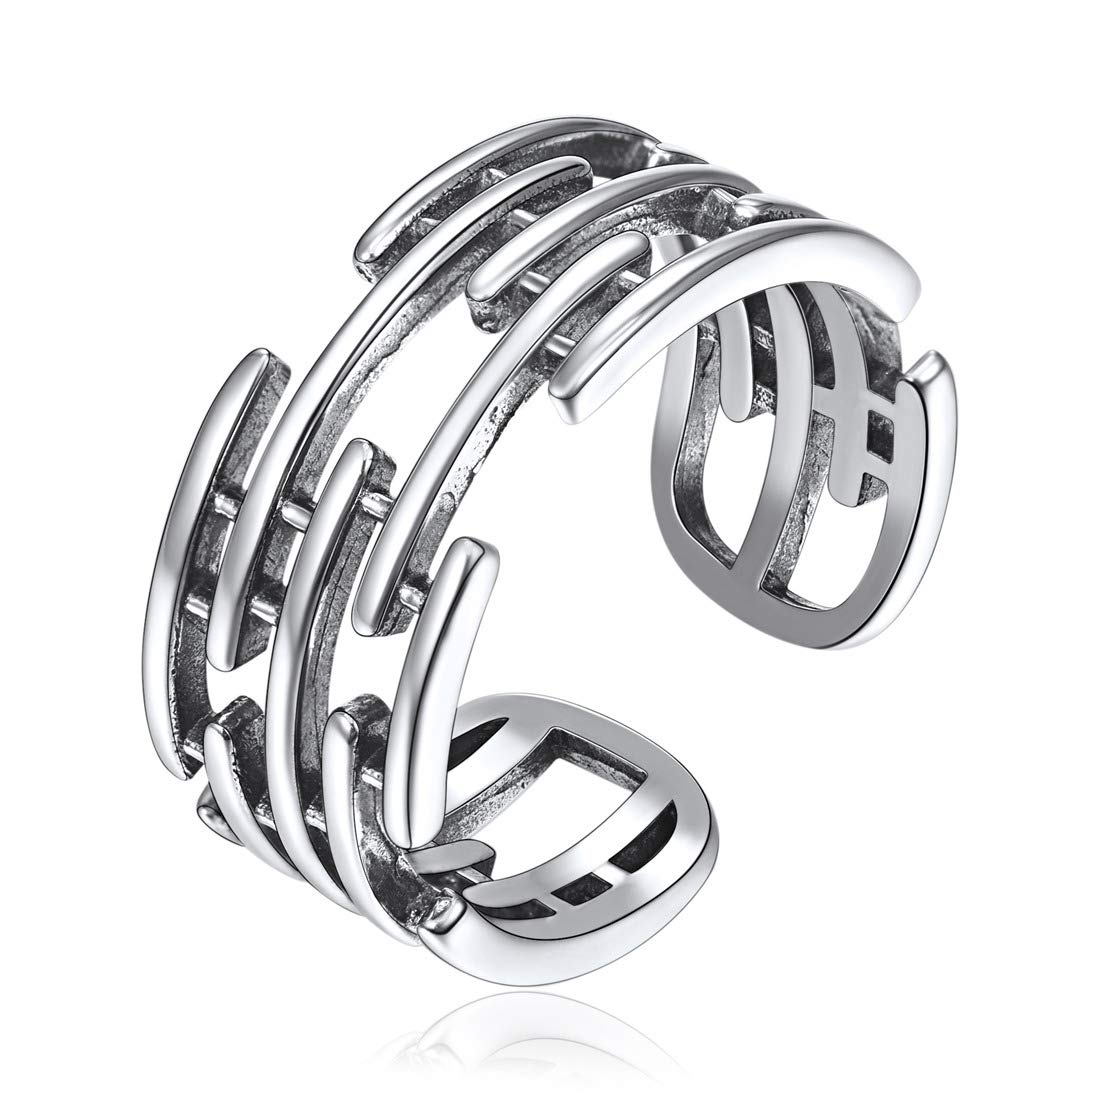 ChicSilver 925 Sterling Silver Stackable Rings Vintage Open Adjustable Cuff Wide Band Ring for Women Men